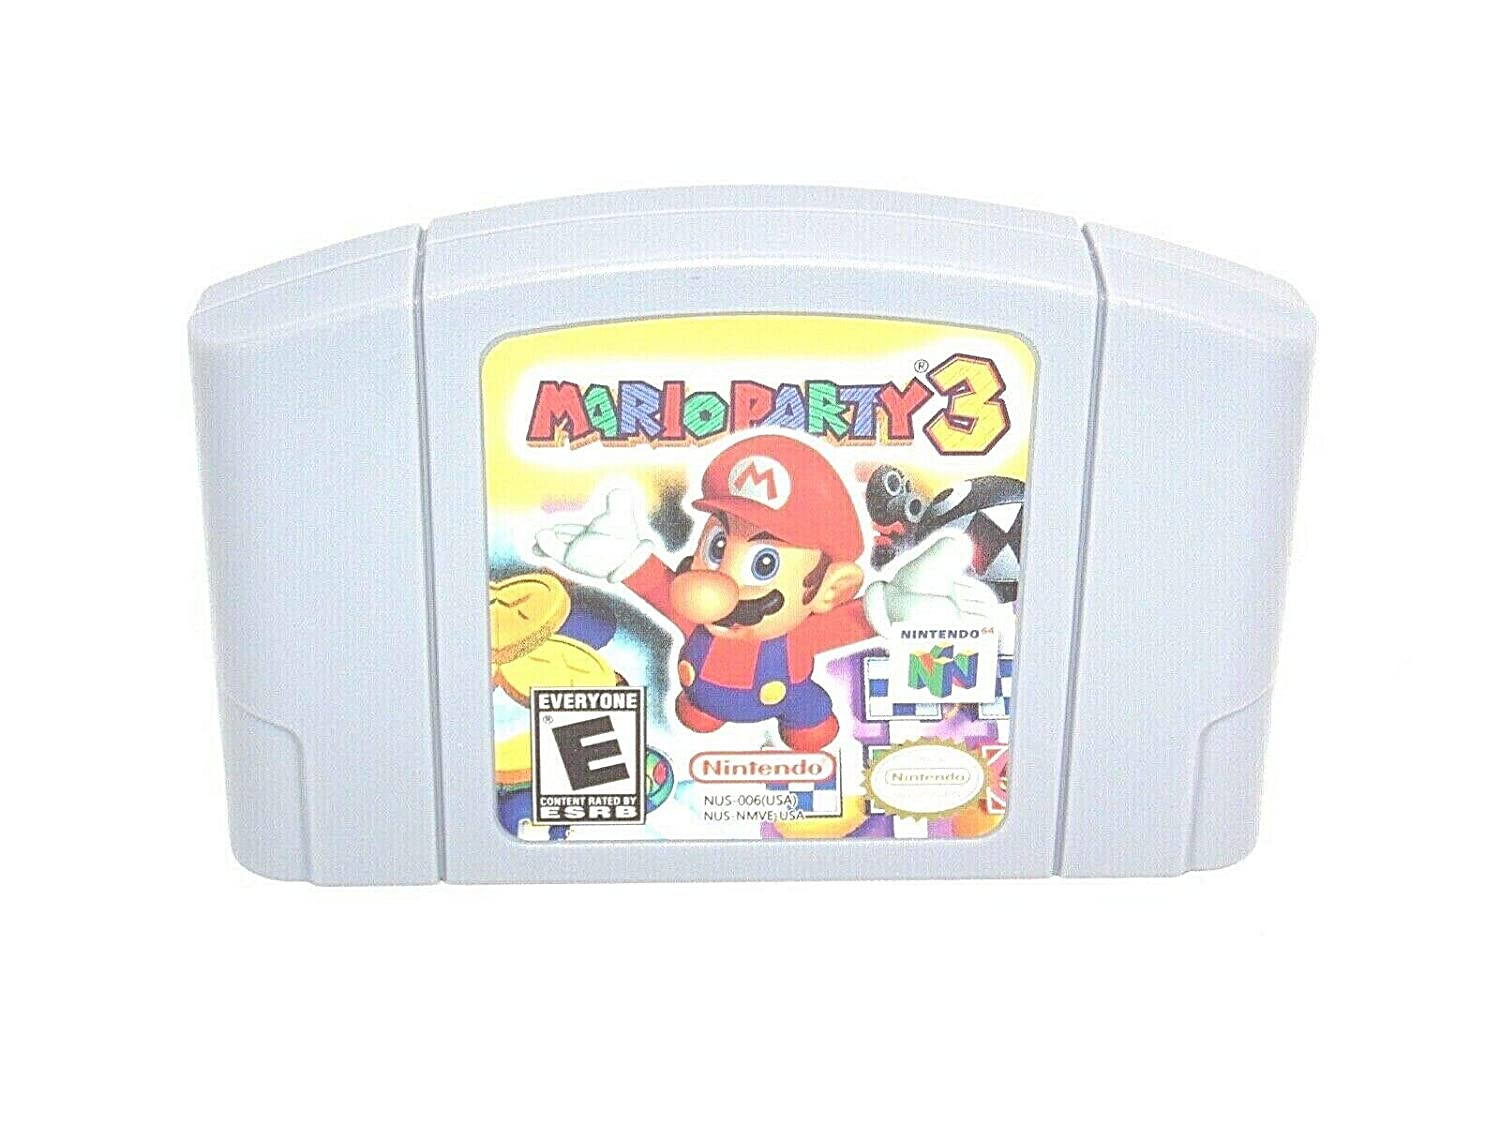 Mario 4 years warranty Party 3 Game Card For Tulsa Mall - US Nintendo N64 Version